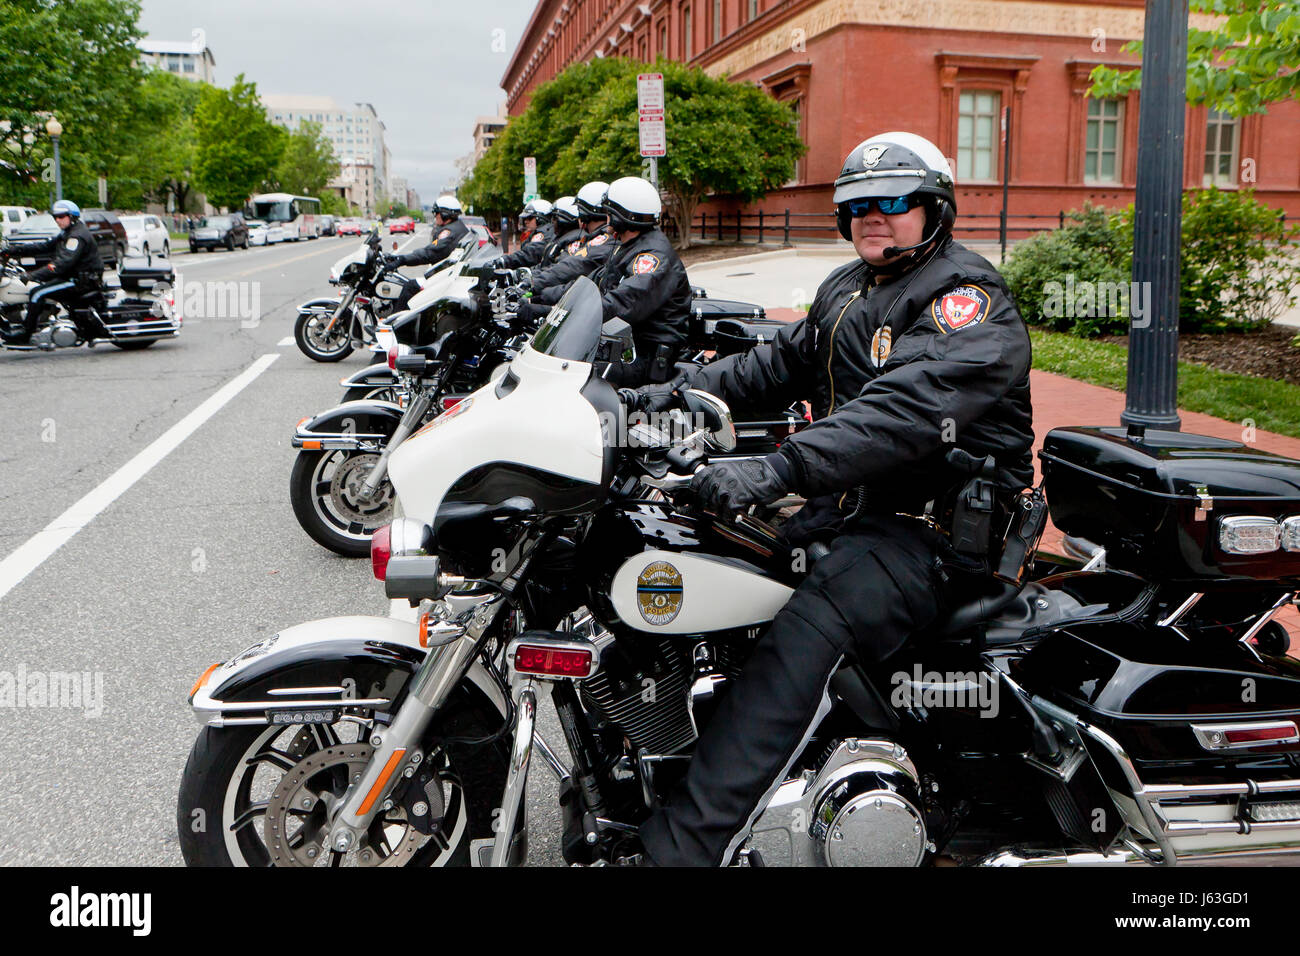 Durham, North Carolina Police Department motorcycle unit policeman sitting on motorcycle - USA - Stock Image